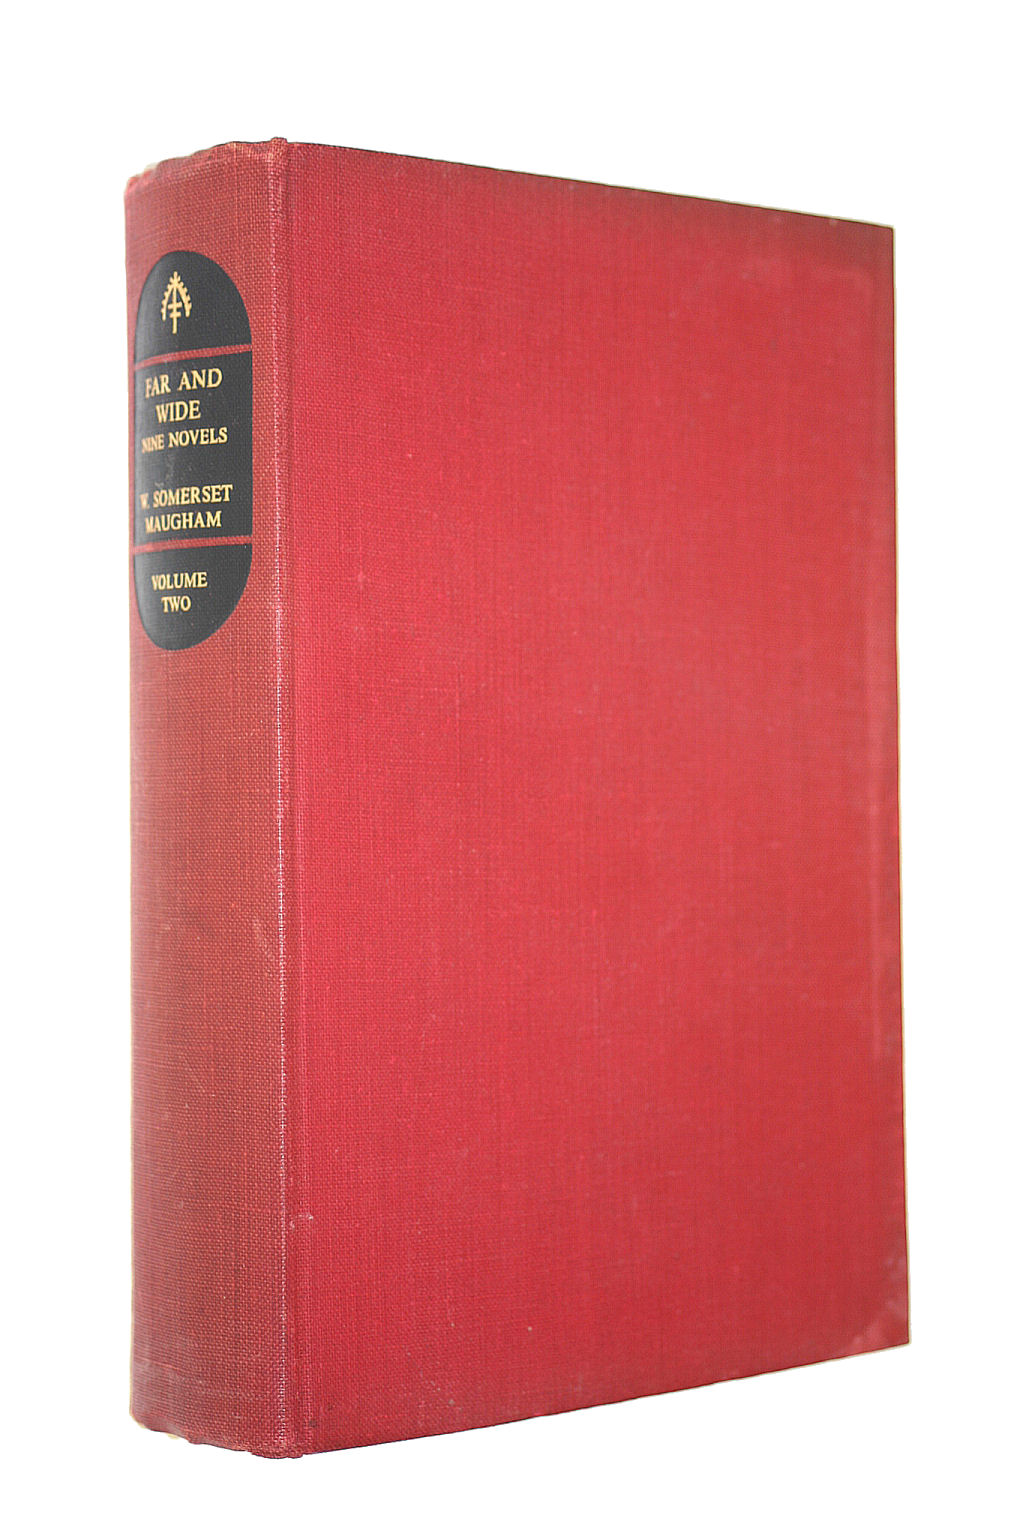 Image for FAR AND WIDE. Nine Novels by W. Somerset Maugham. Selected by the Author. Volume Two